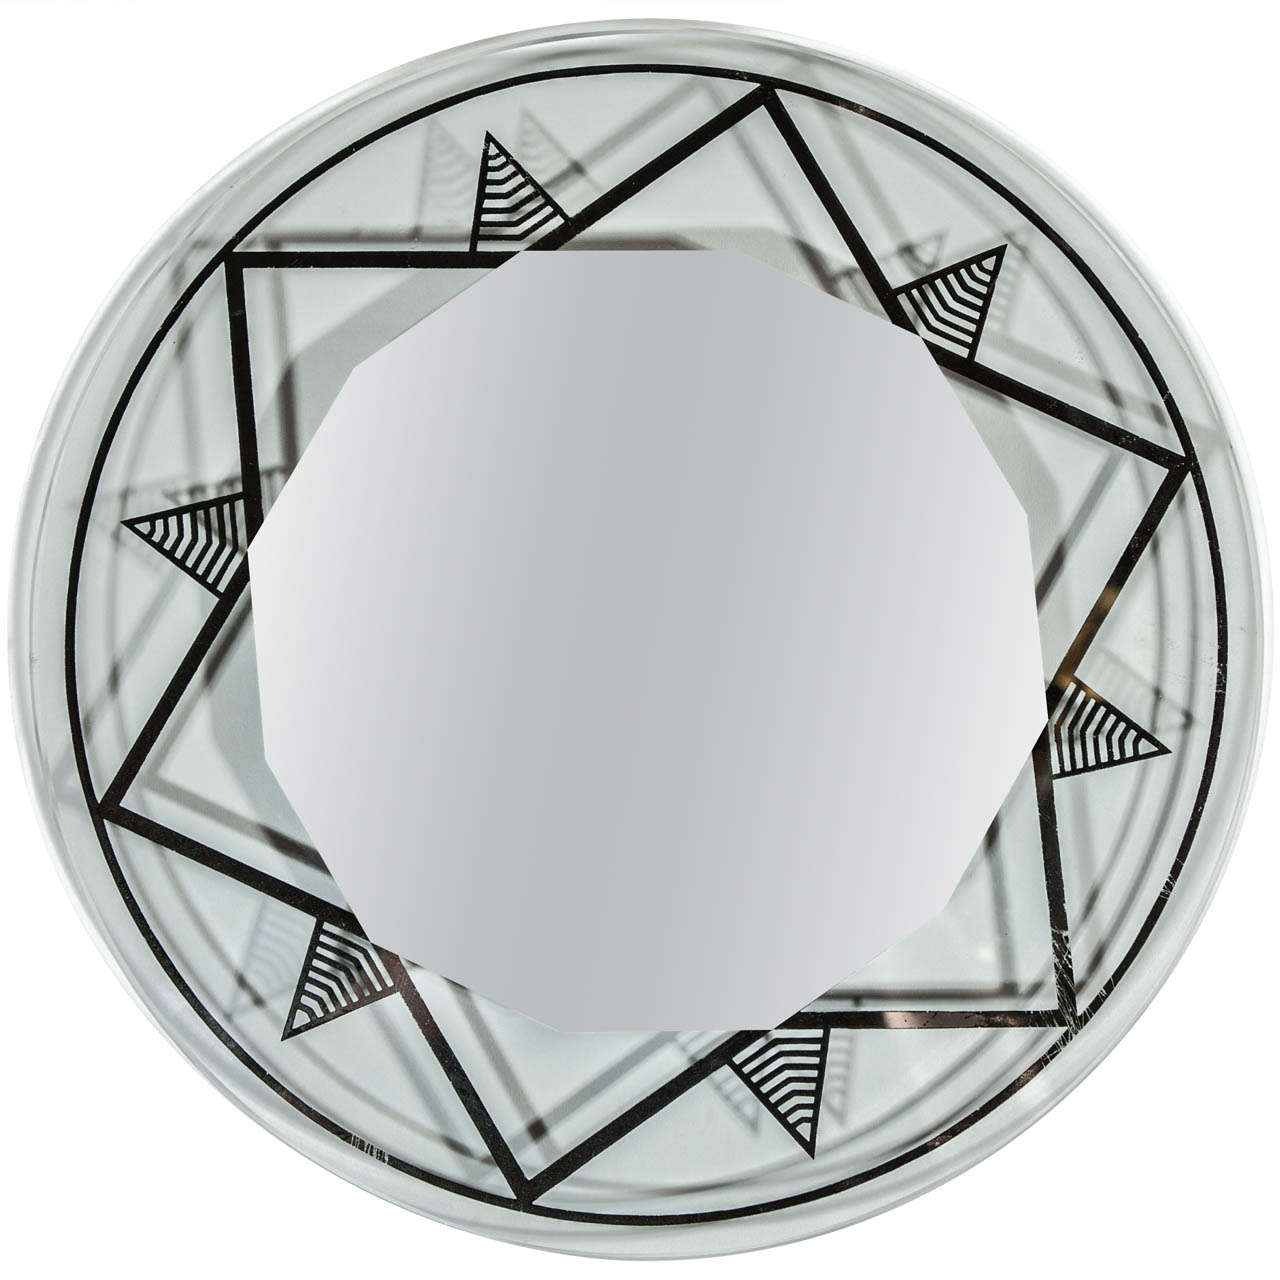 20th Century French Deco Mirrored Tray Circa 1920 At 1stdibs